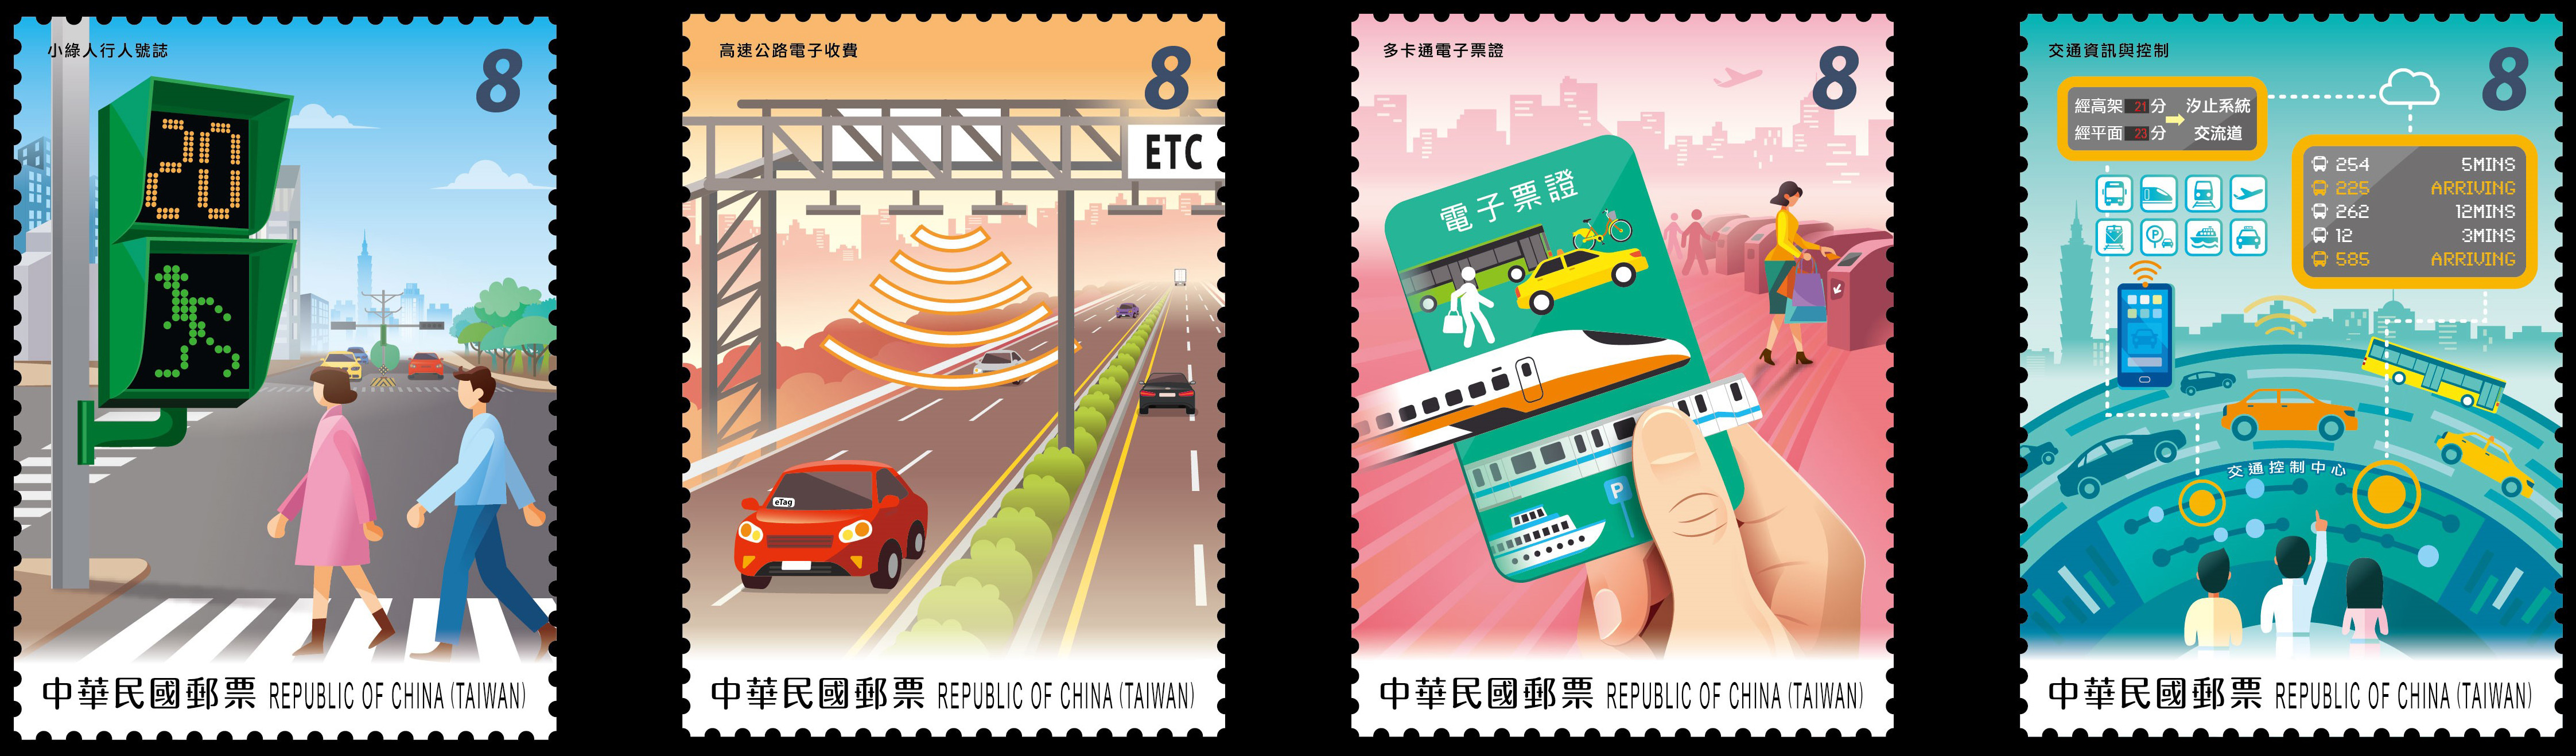 Taiwan Intelligent Transportation Postage Stamps